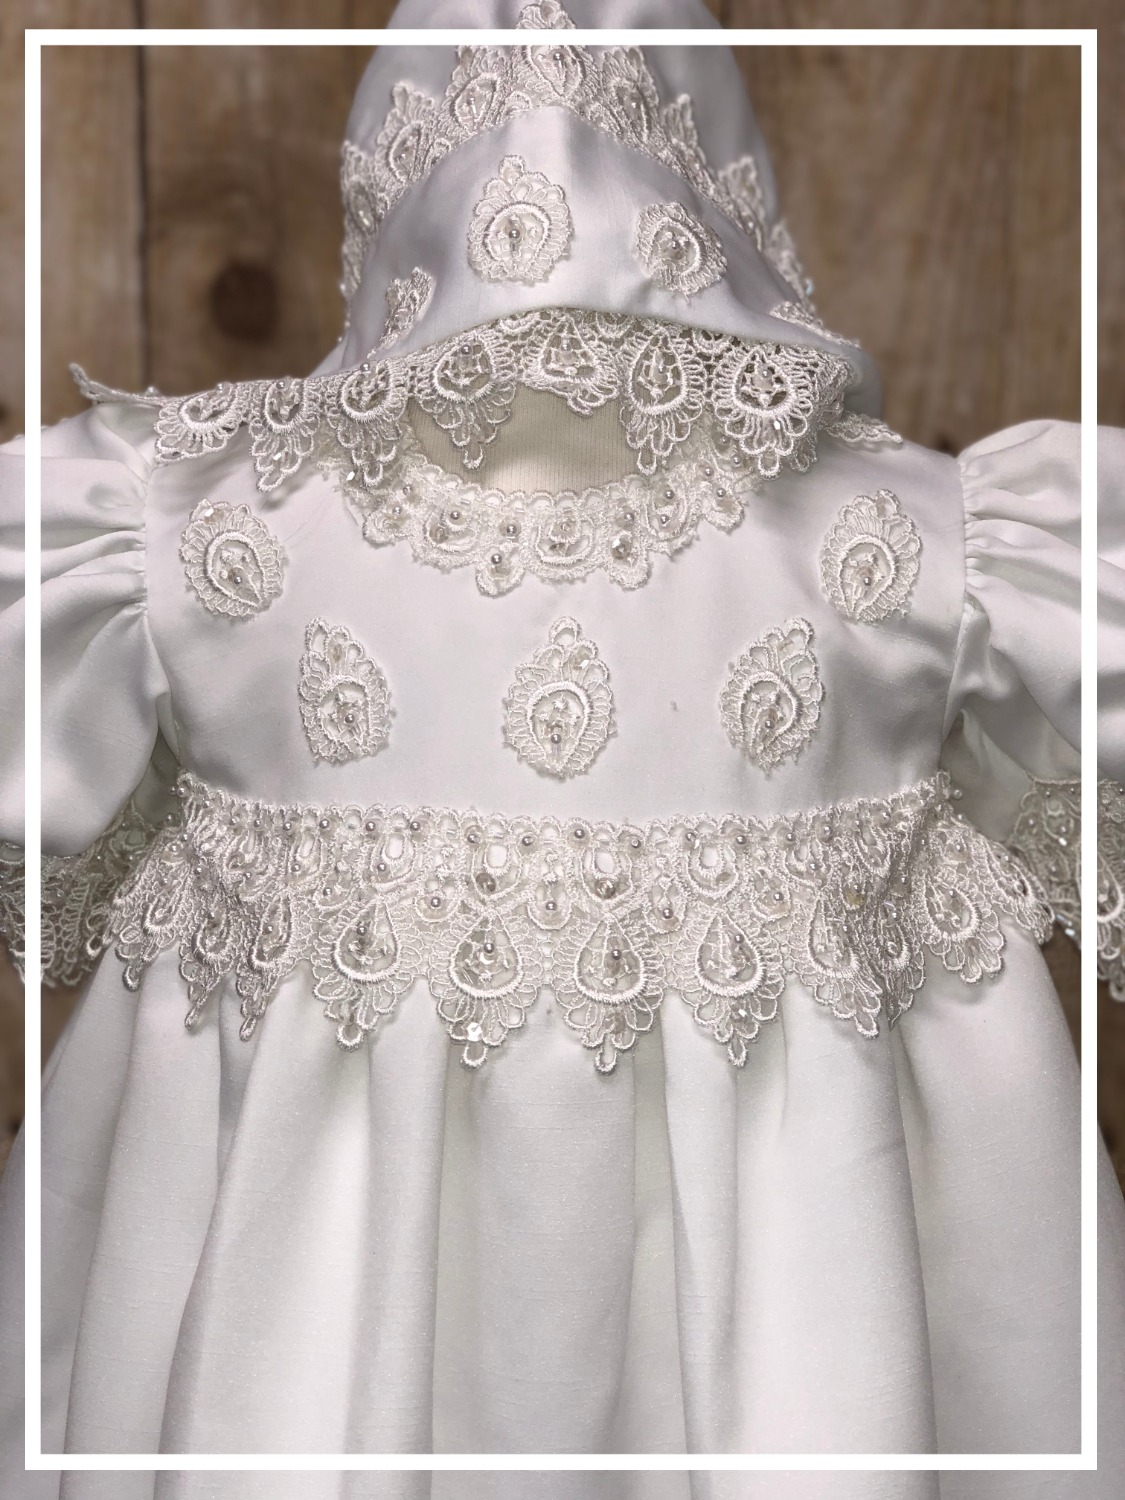 Baptismal dress Christening gown